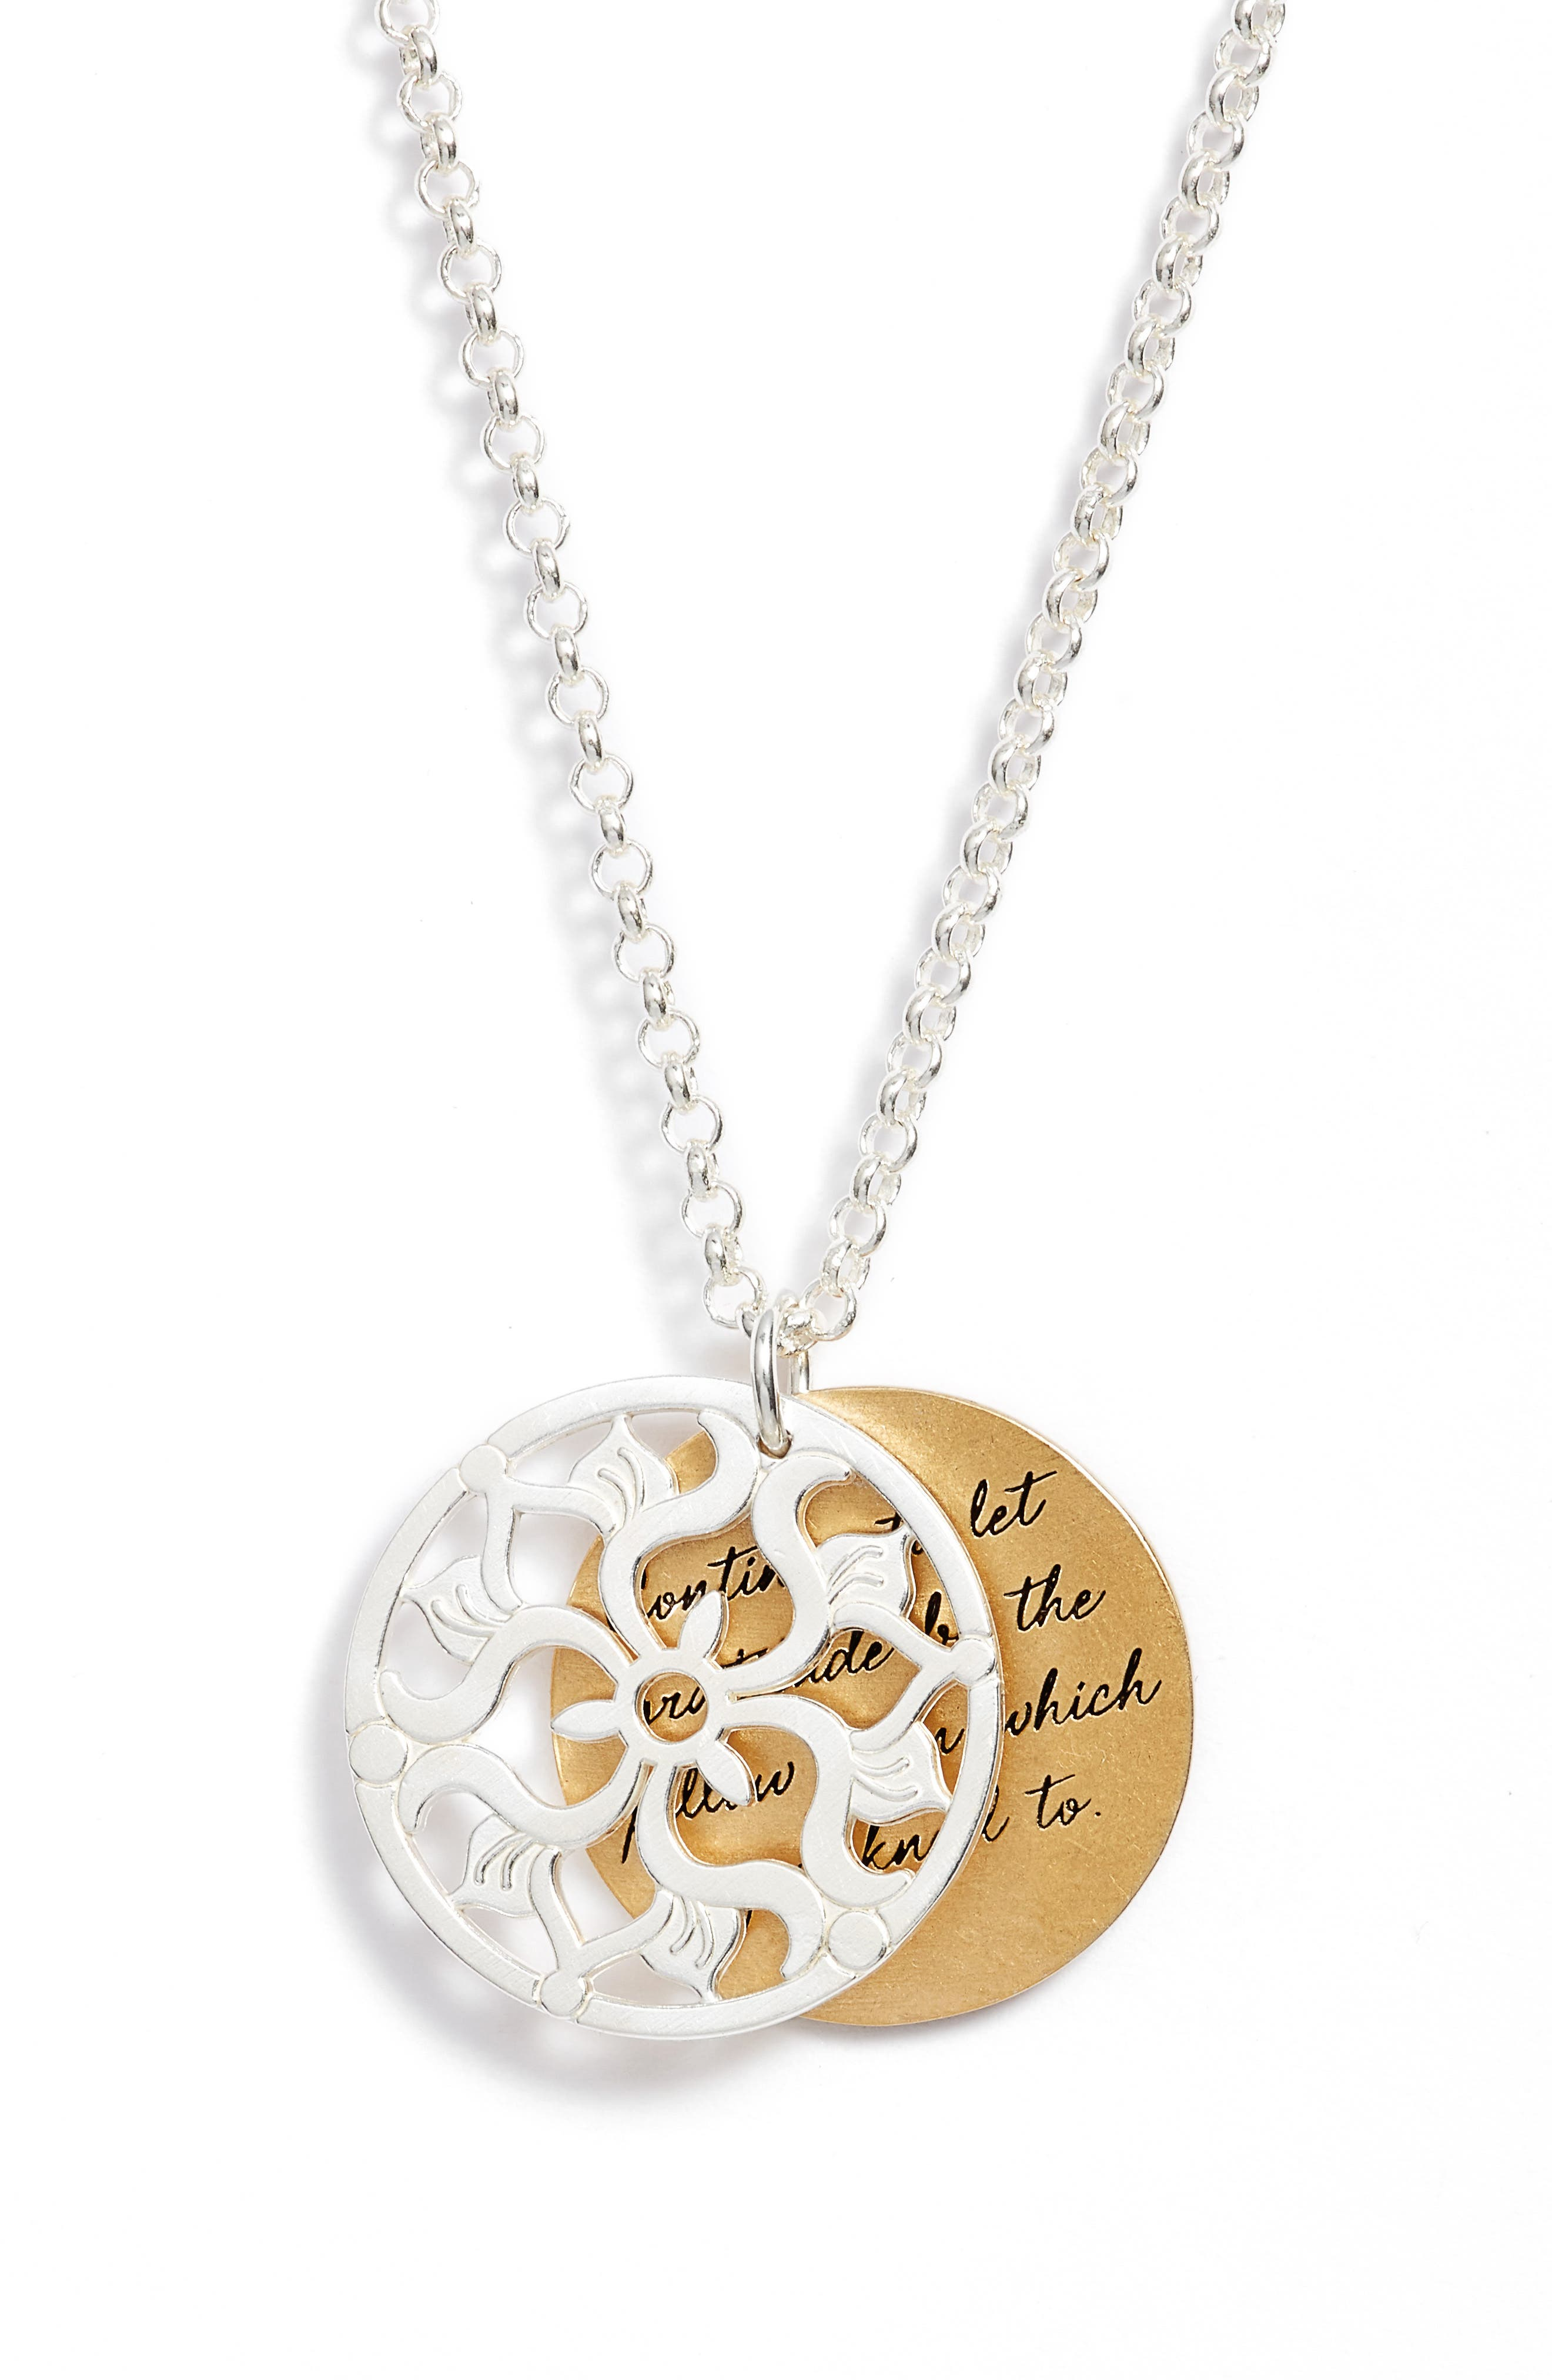 The Legacy Collection - Continue to Let Gratitude... Pendant Necklace,                             Alternate thumbnail 3, color,                             040